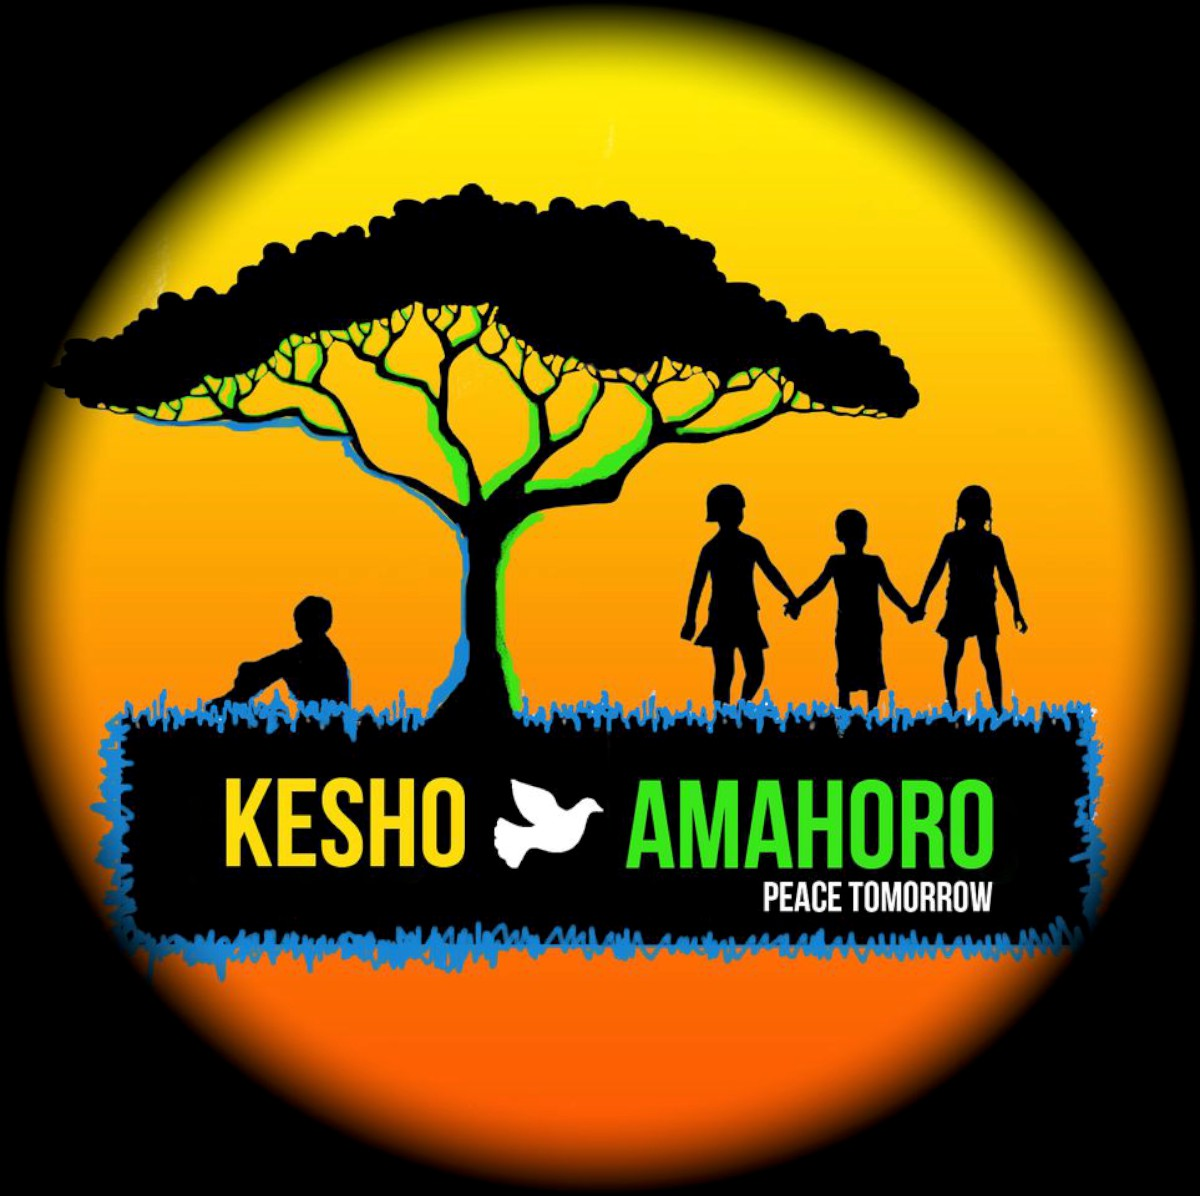 Kesho Amahoro: Refugee story comes to the Rose Theatre